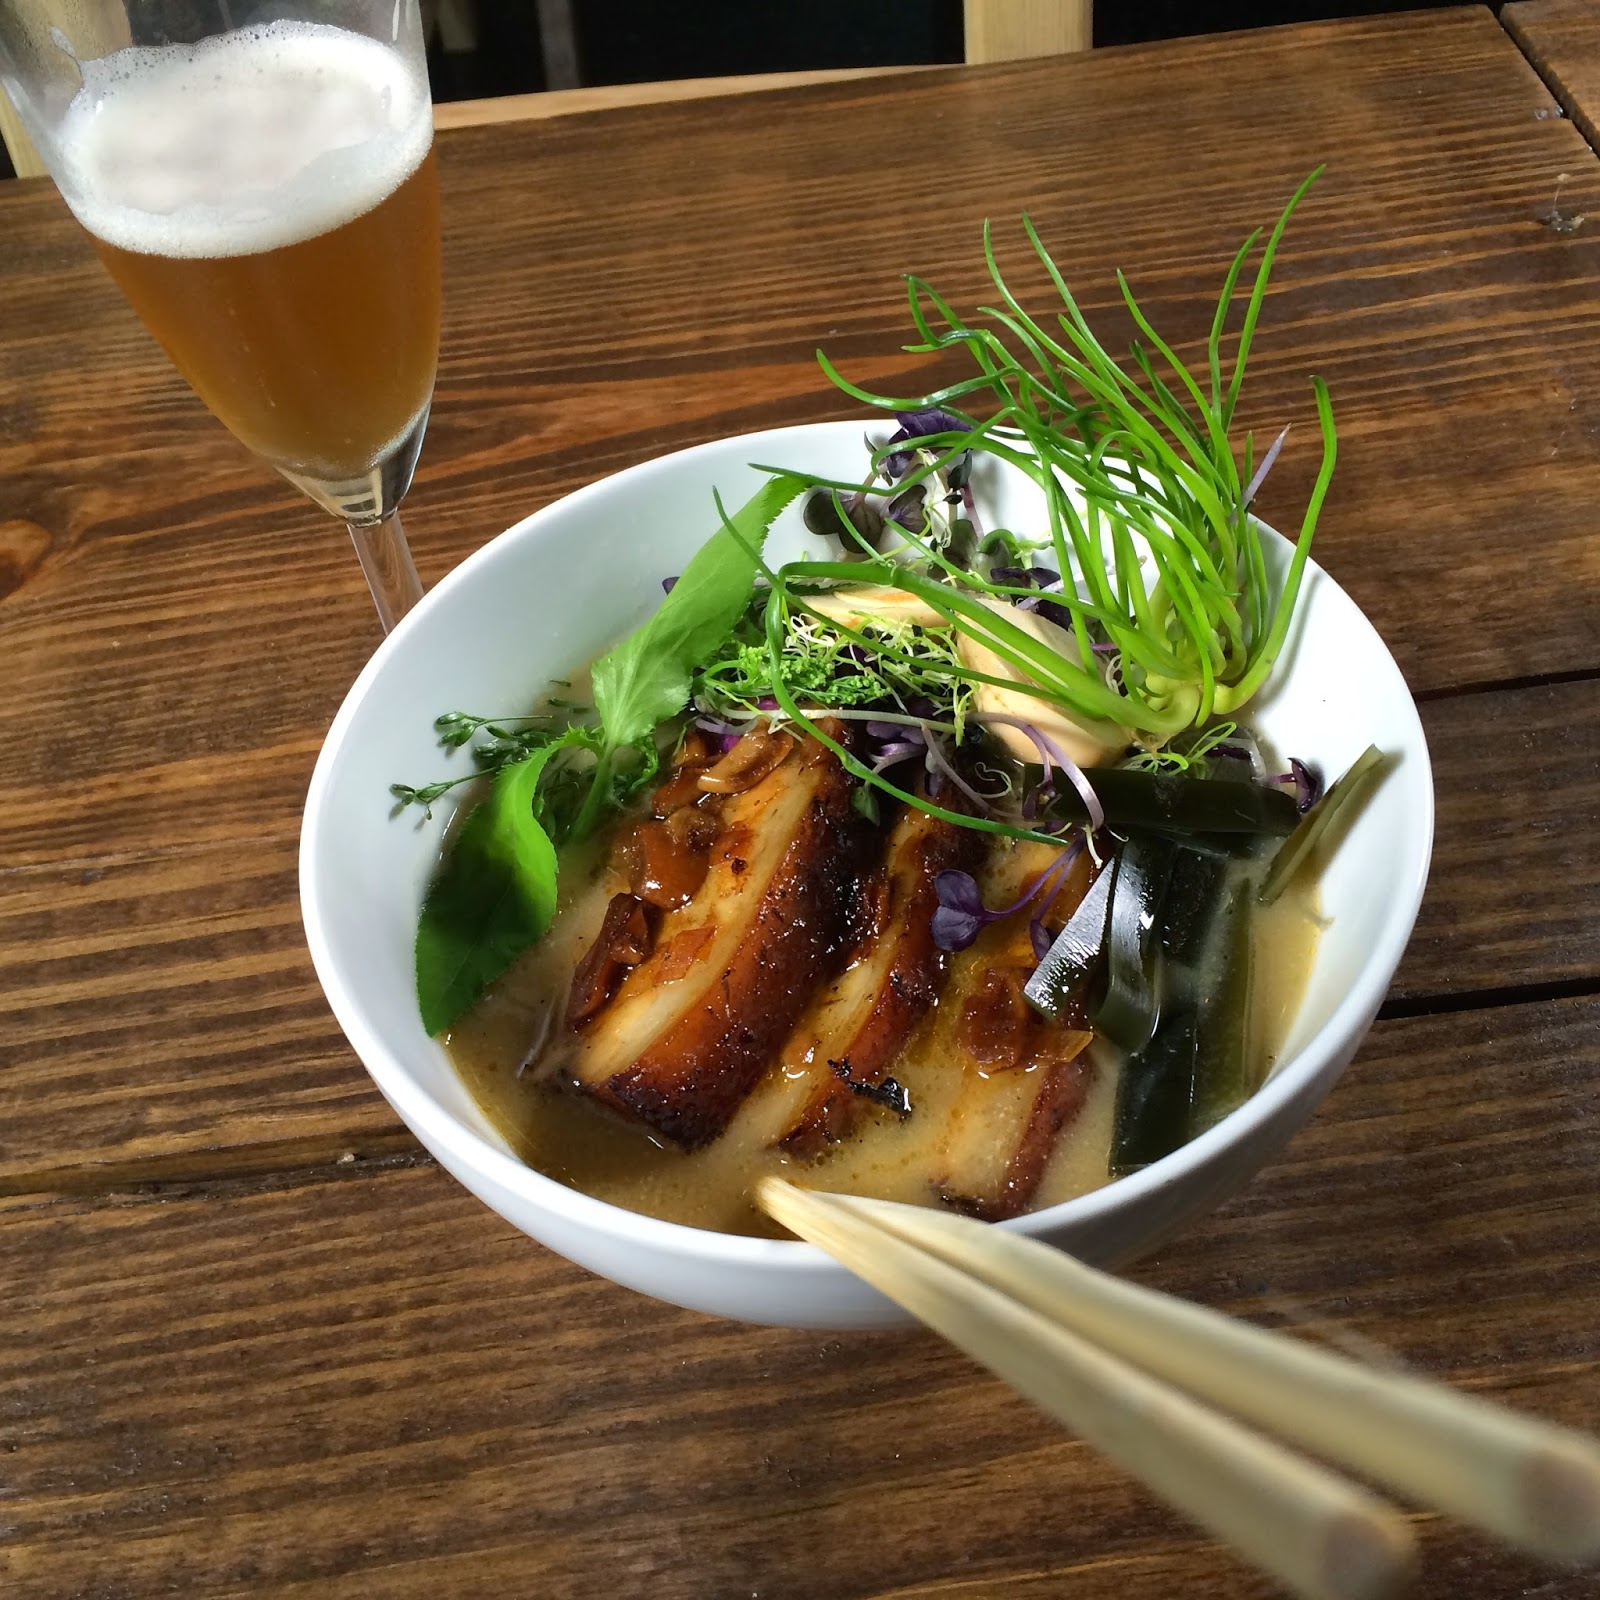 Boneless Pork Rib Ramen: Soy Braised, Miso Broth, Udon Noodles, Pickled Quail Egg and Sprouts.